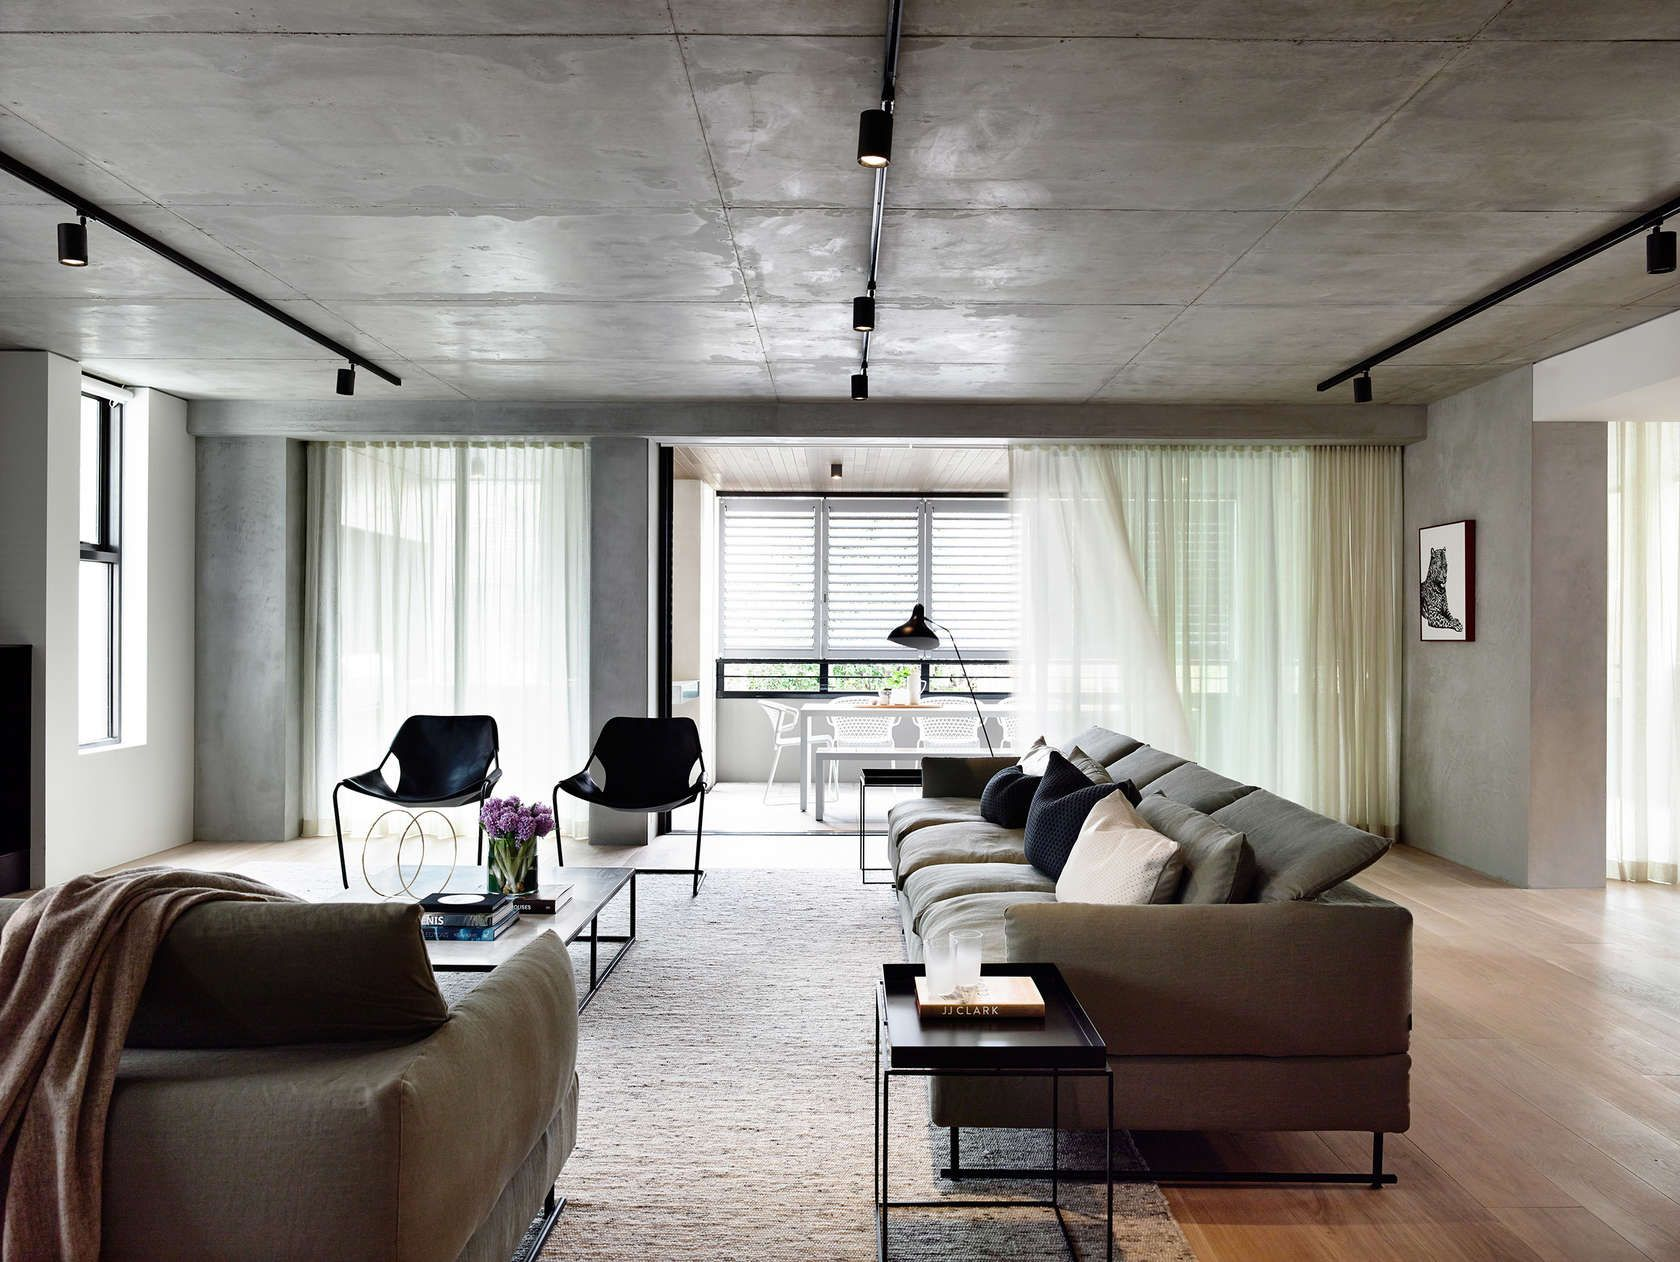 126 Walsh Street - A collaboration between Neometro, MAA Architects ...